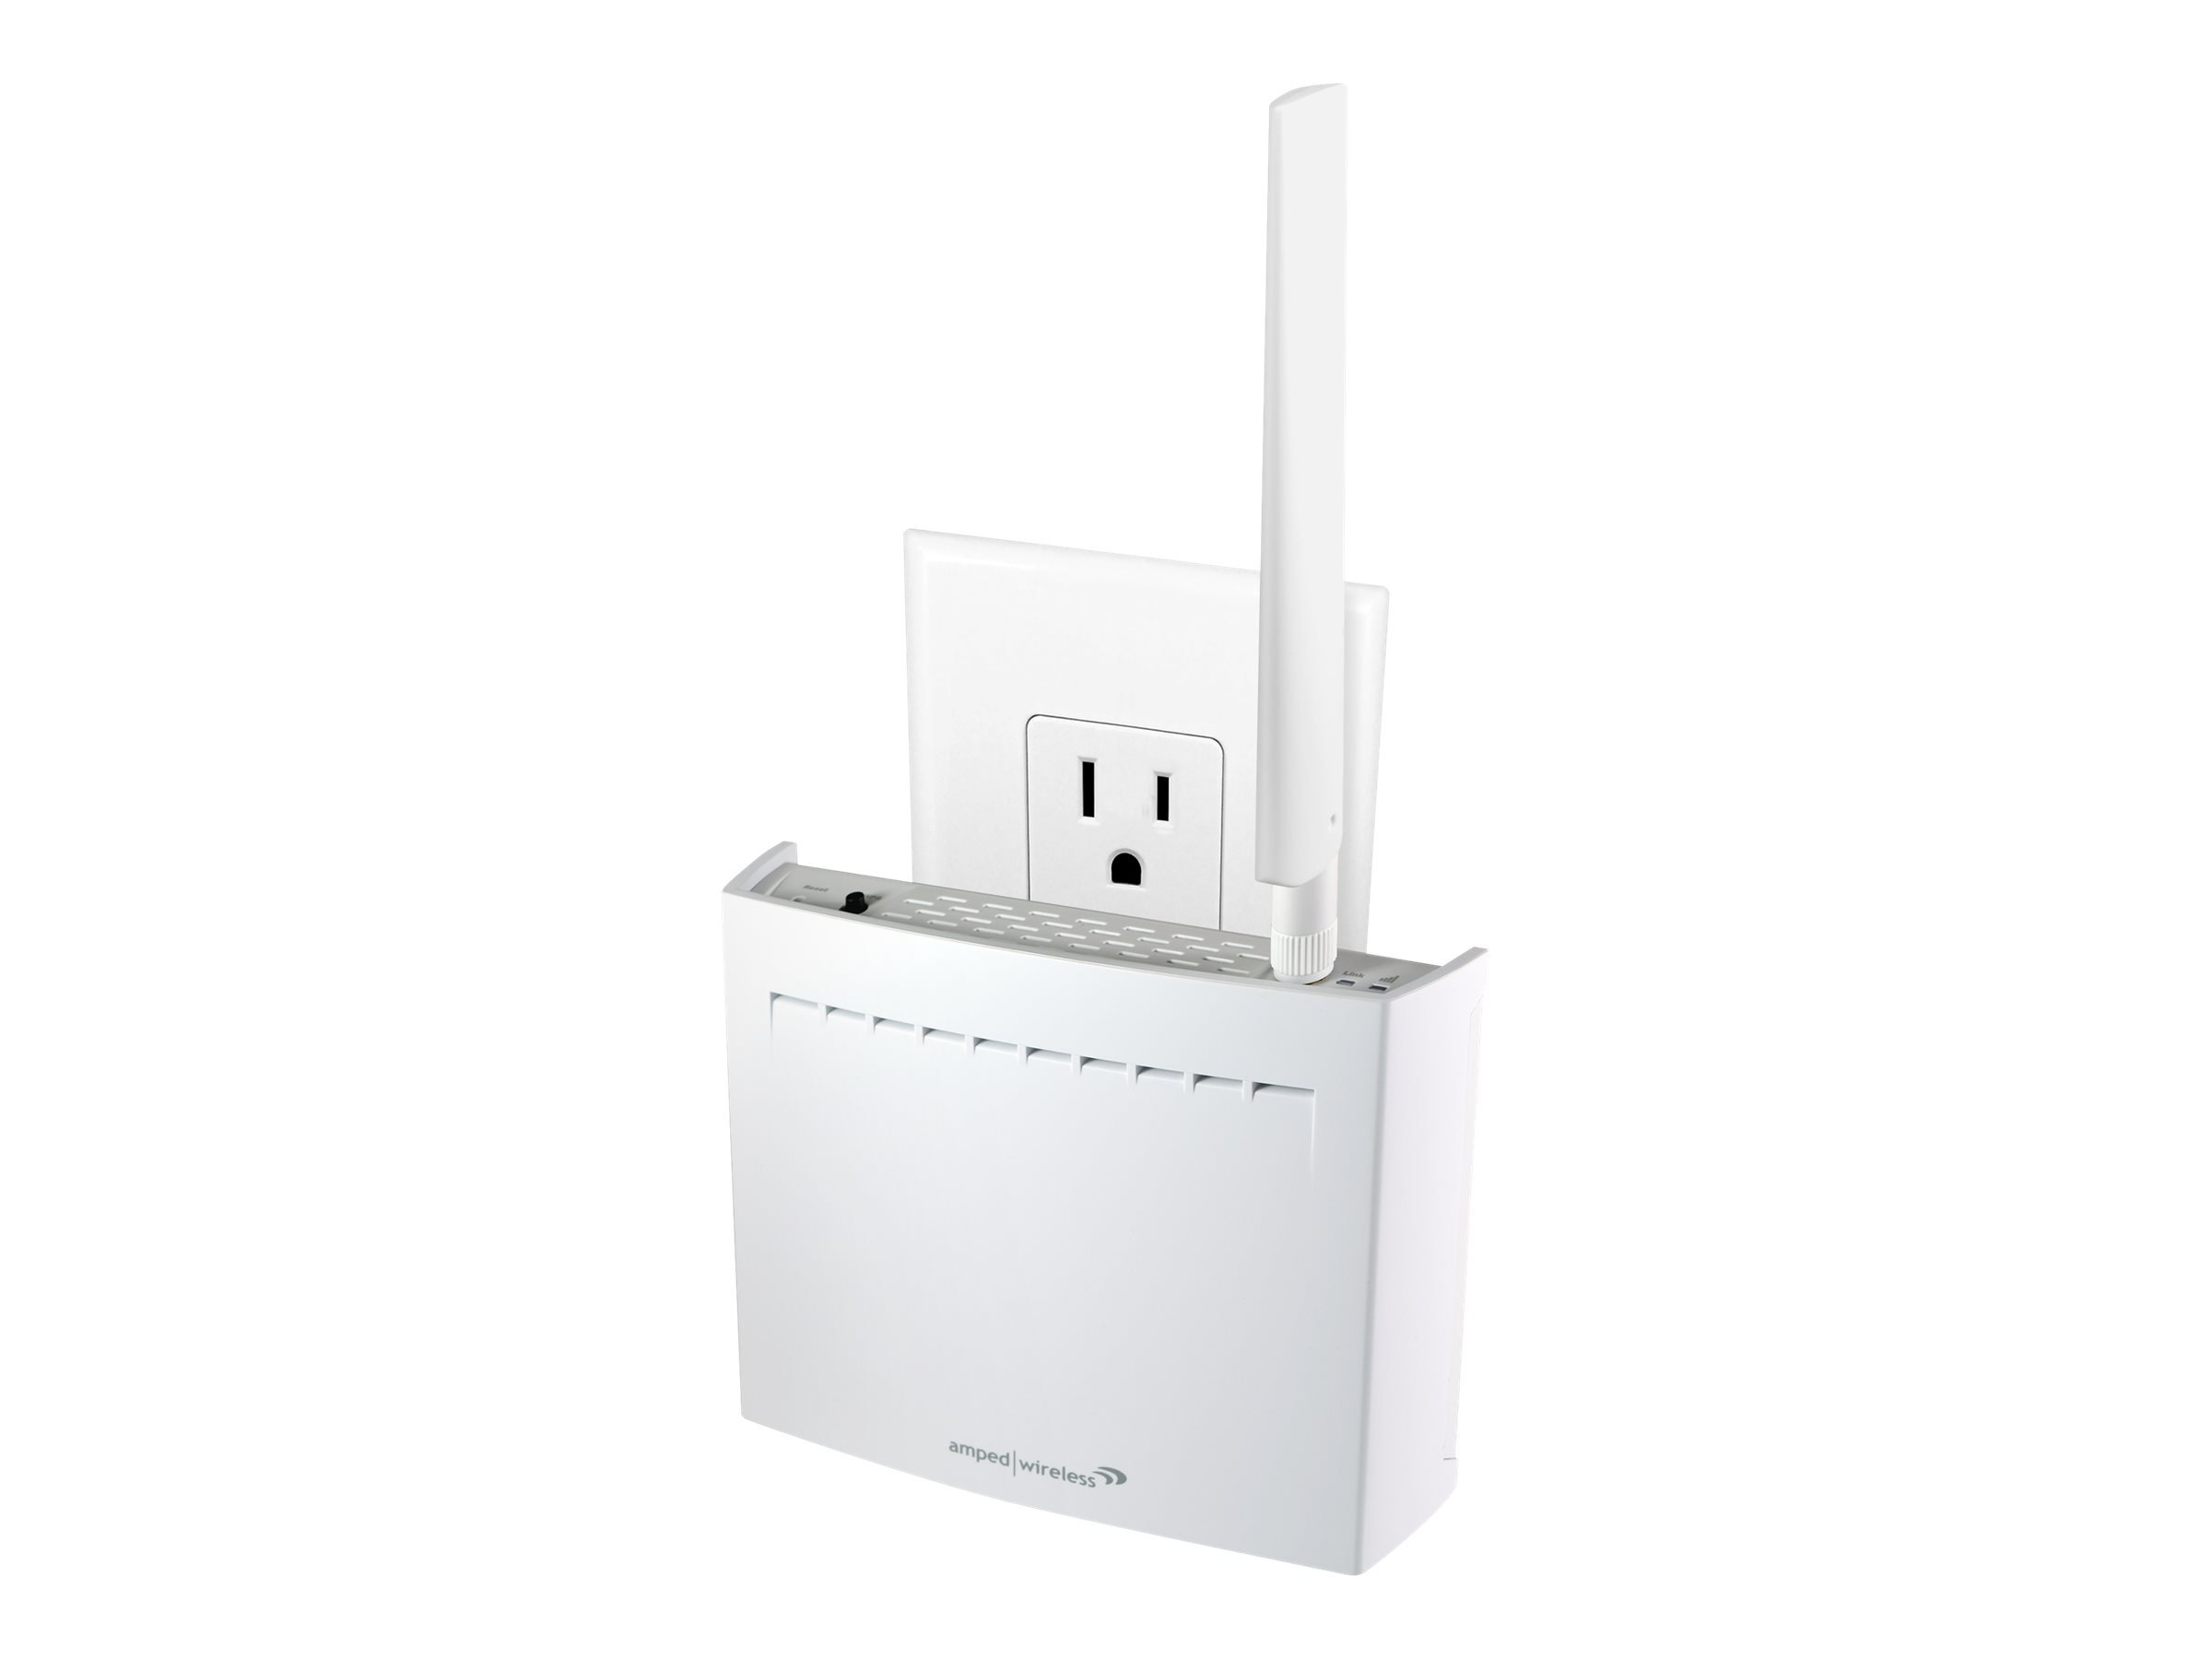 Amped REC22A Wireless High Power Plug-In AC1200 Wi-Fi Range Extender by Amped Wireless (Image #1)